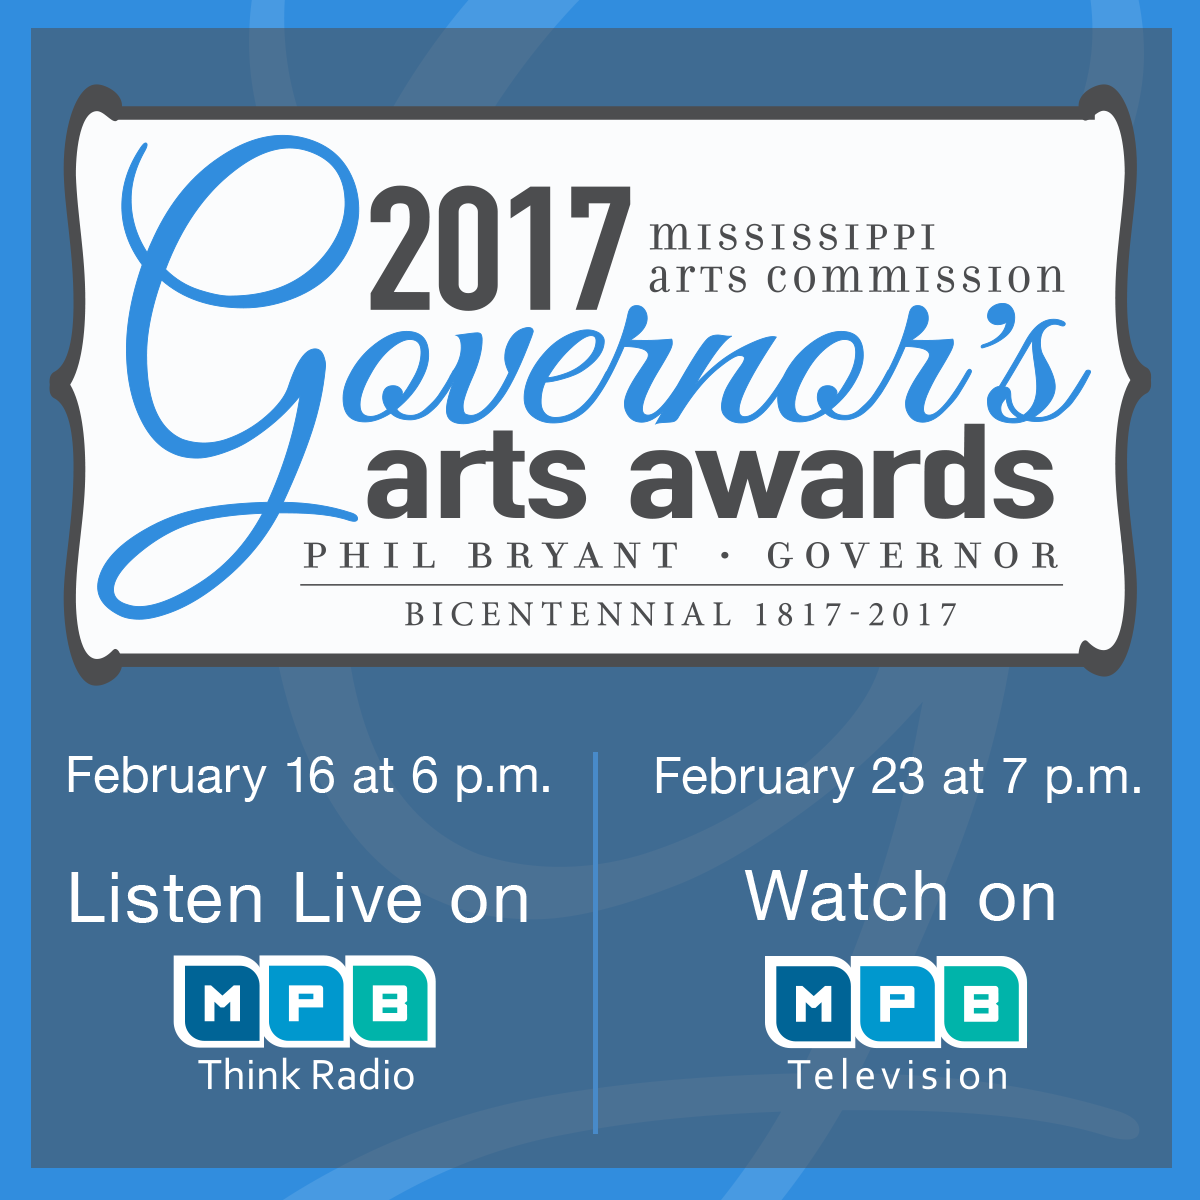 Watch the 2017 Governor's Arts Awards on February 23rd at 7PM on MPB TV.